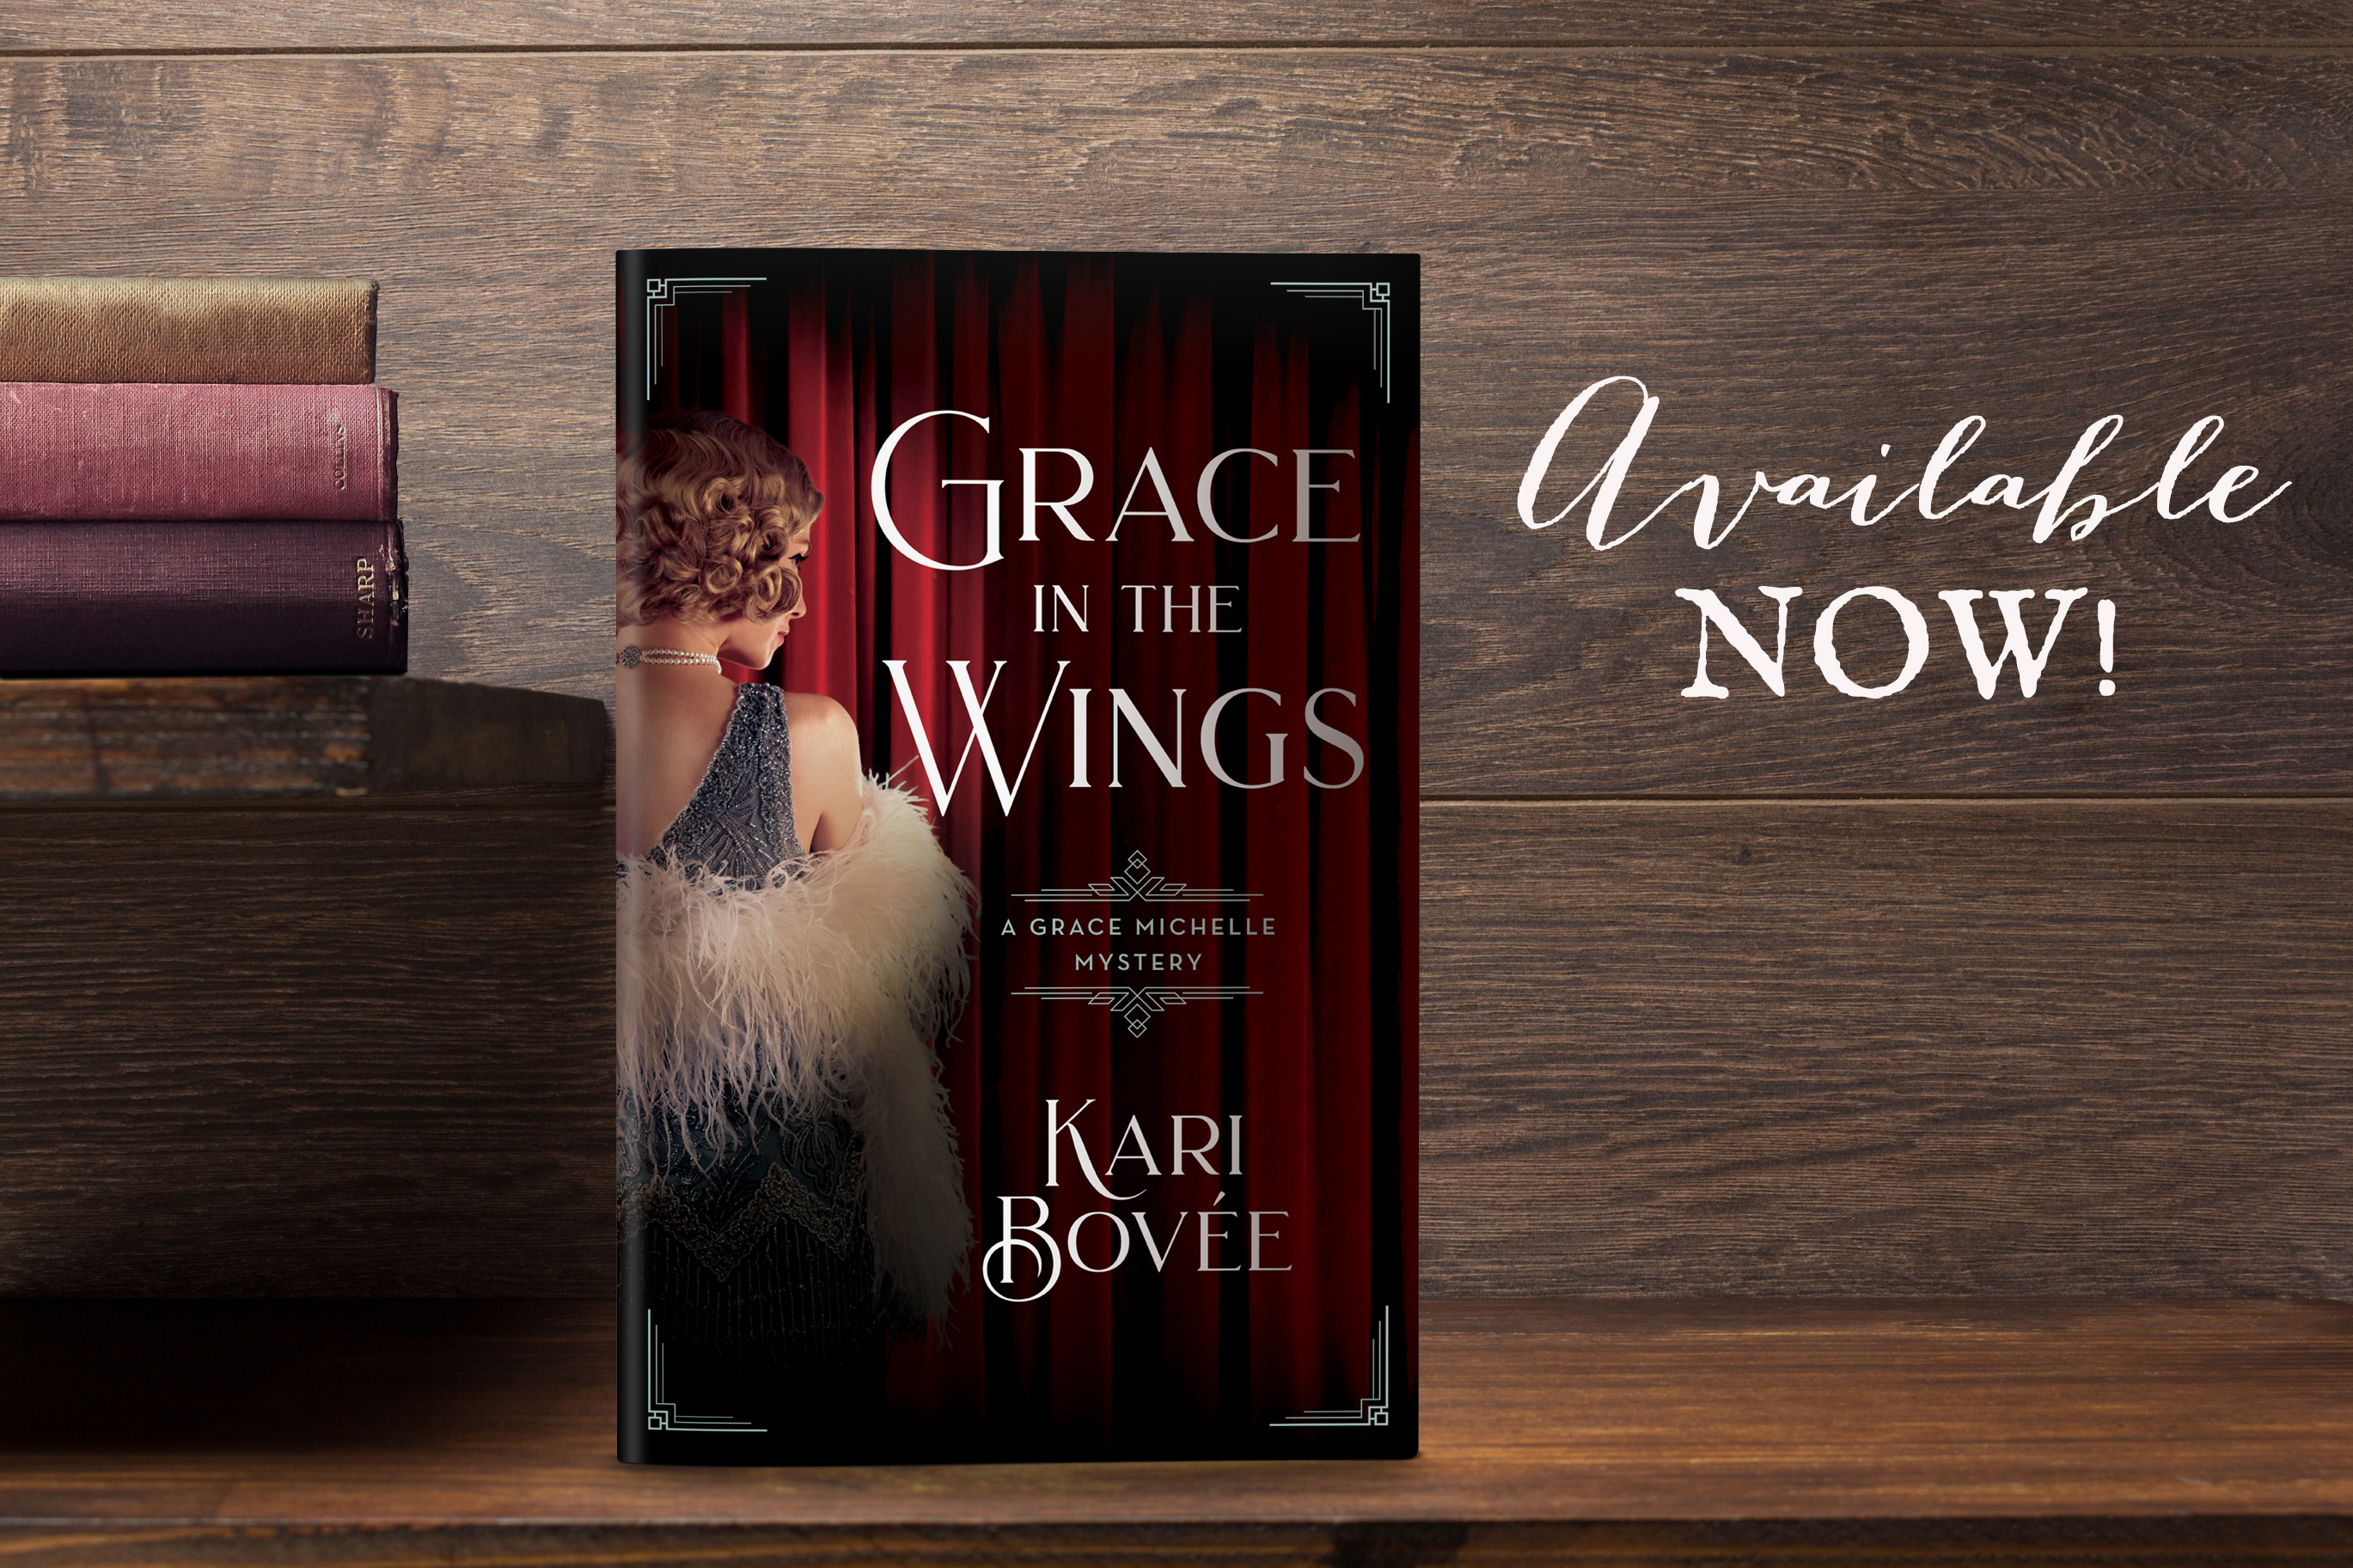 1920 harlem renaissance historical mystery series grace michelle grace in the wings Kari Bovee historical fiction broadway theater mystery history female lead Cozy Mystery romantic suspense thriller sleuth